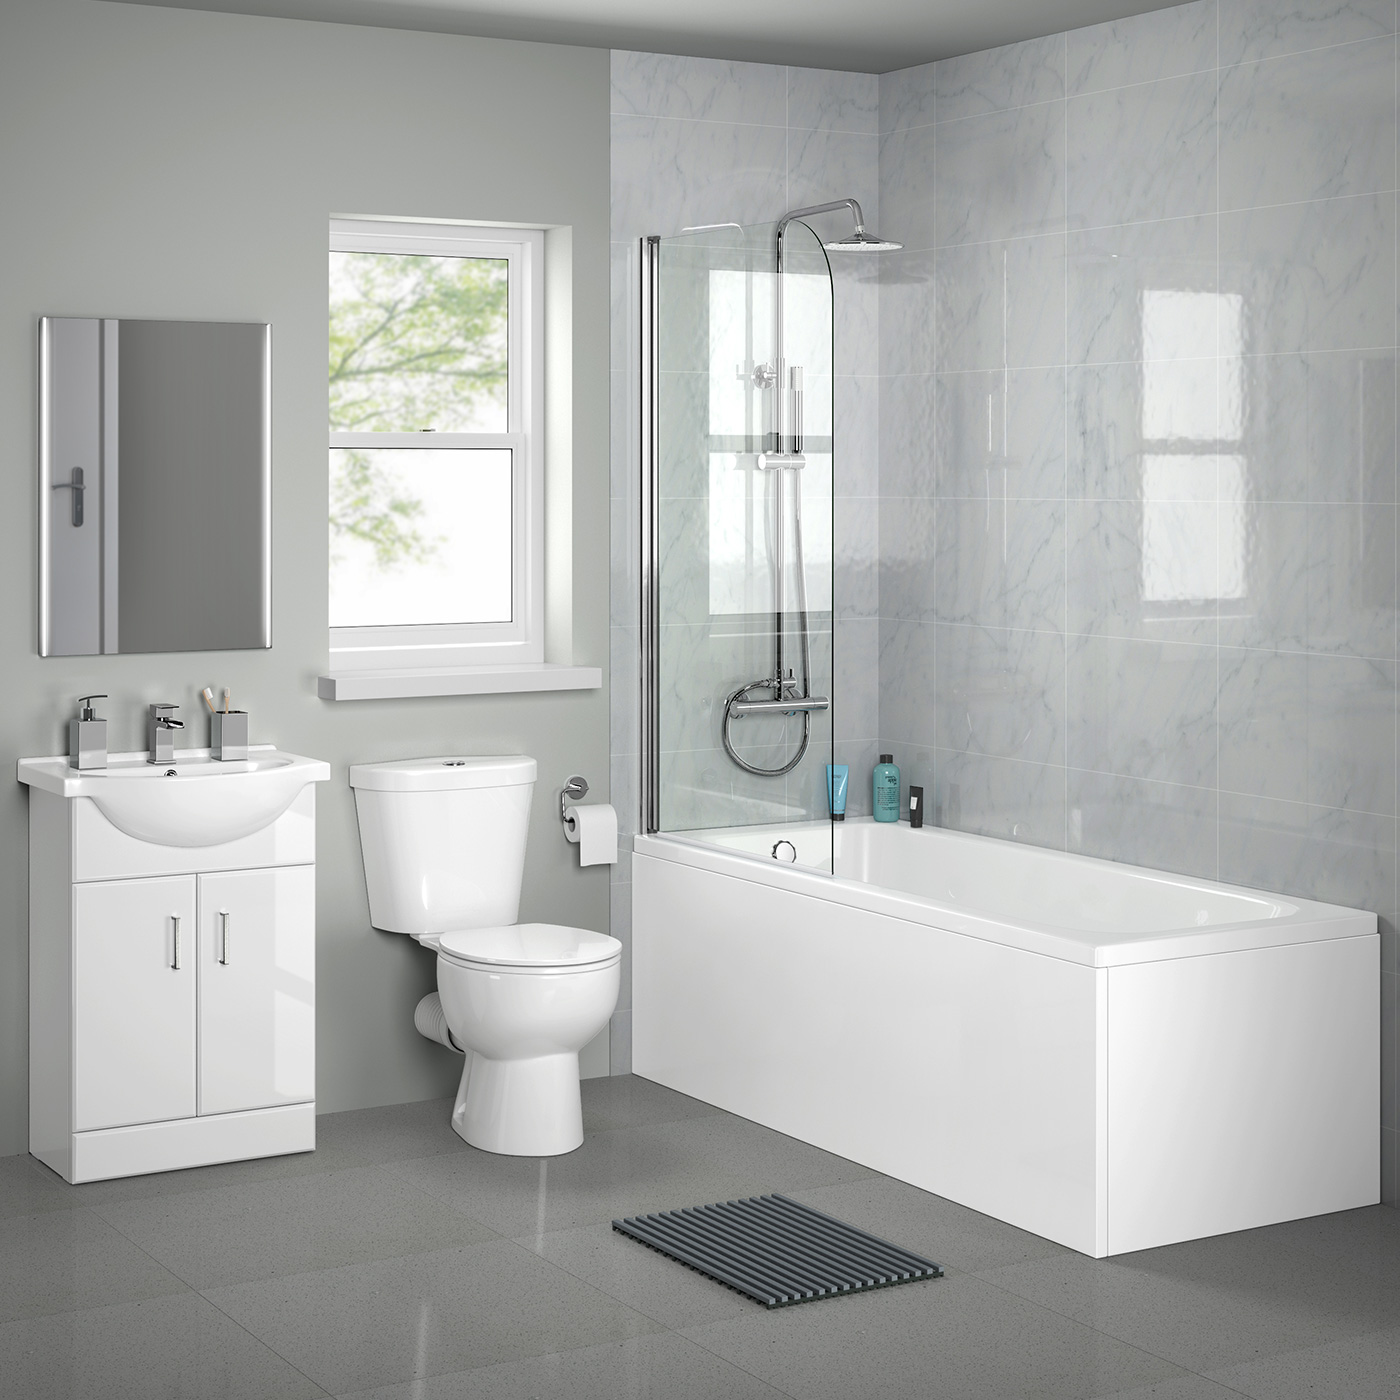 Bathroom Suites Amp Accessories Woodhouse Amp Sturnham Ltd Plumbing Merchants In Peterborough